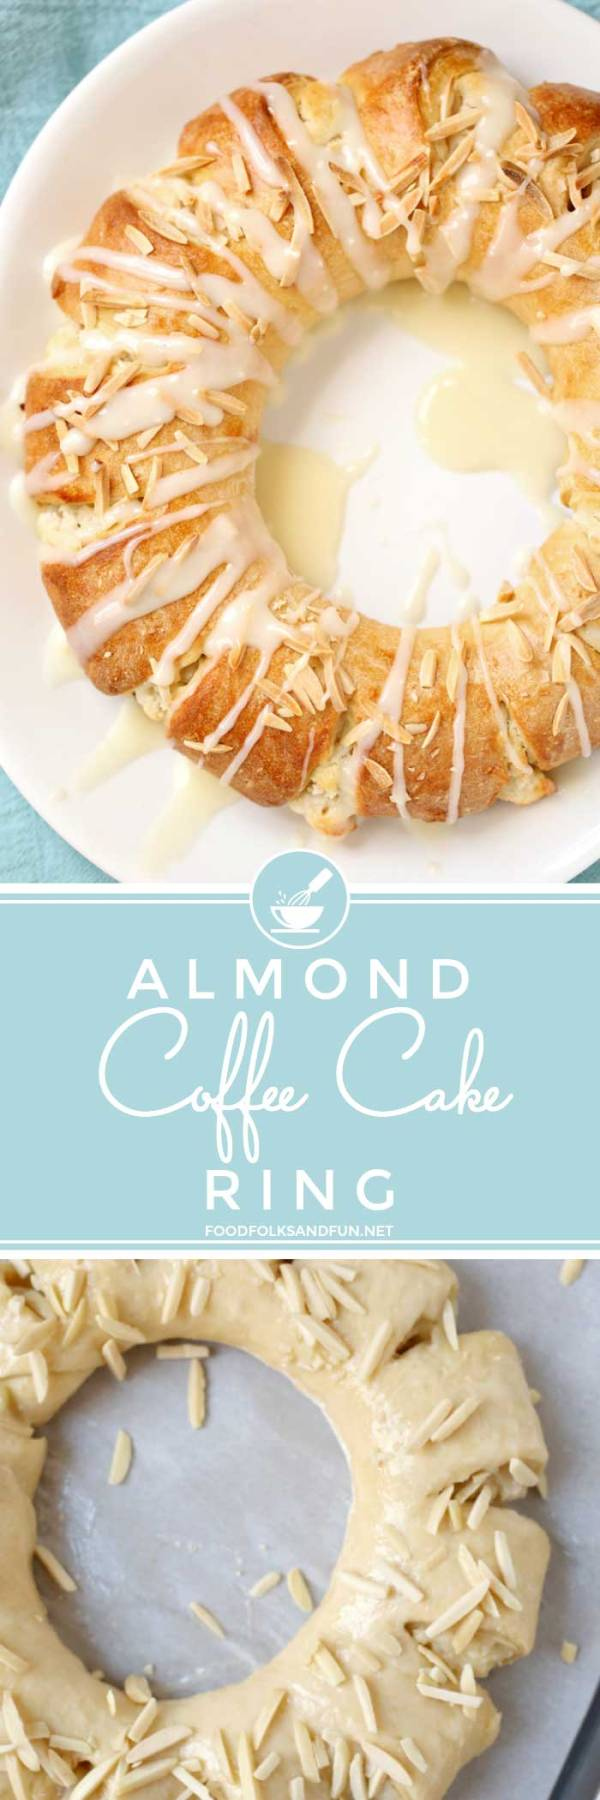 The best Almond Coffee Cake Ring!